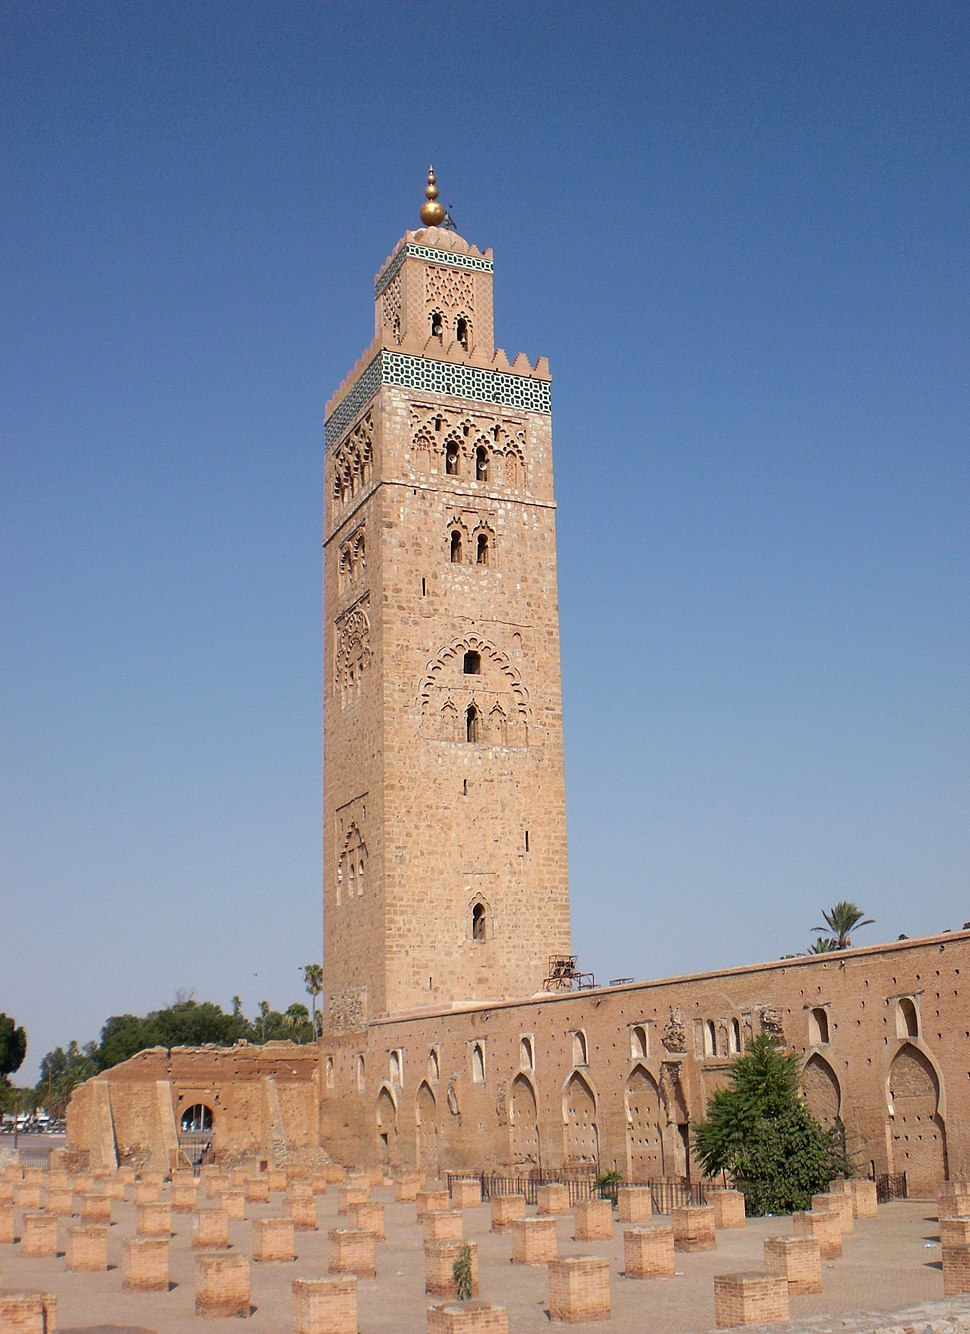 Tower in Morocco (2010)